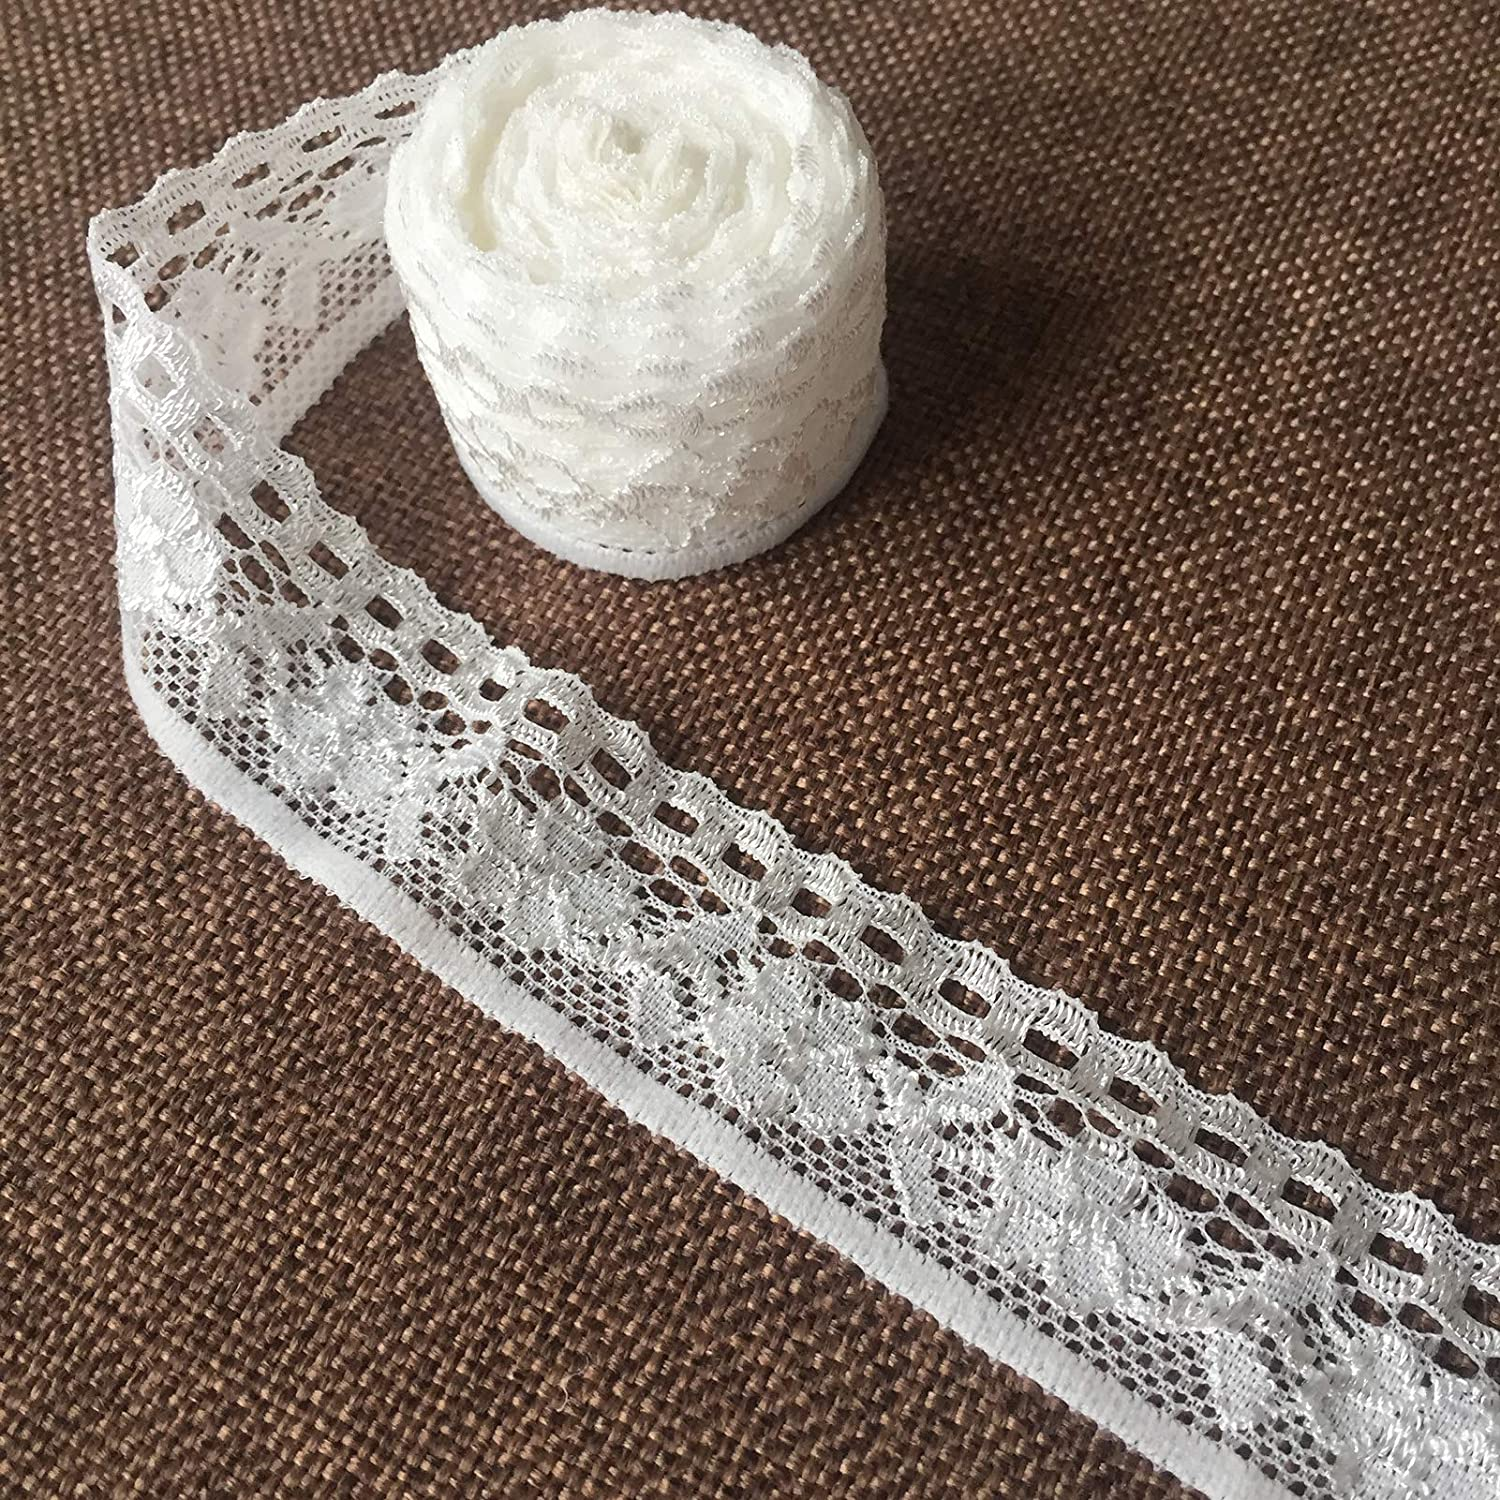 Olive Lace 1 inch Wide 20 Yards Black Trim lace Ribbon with Floral Pattern for Bridal Wedding Decorations Sewing DIY Making and DIY Crafts h741 Black